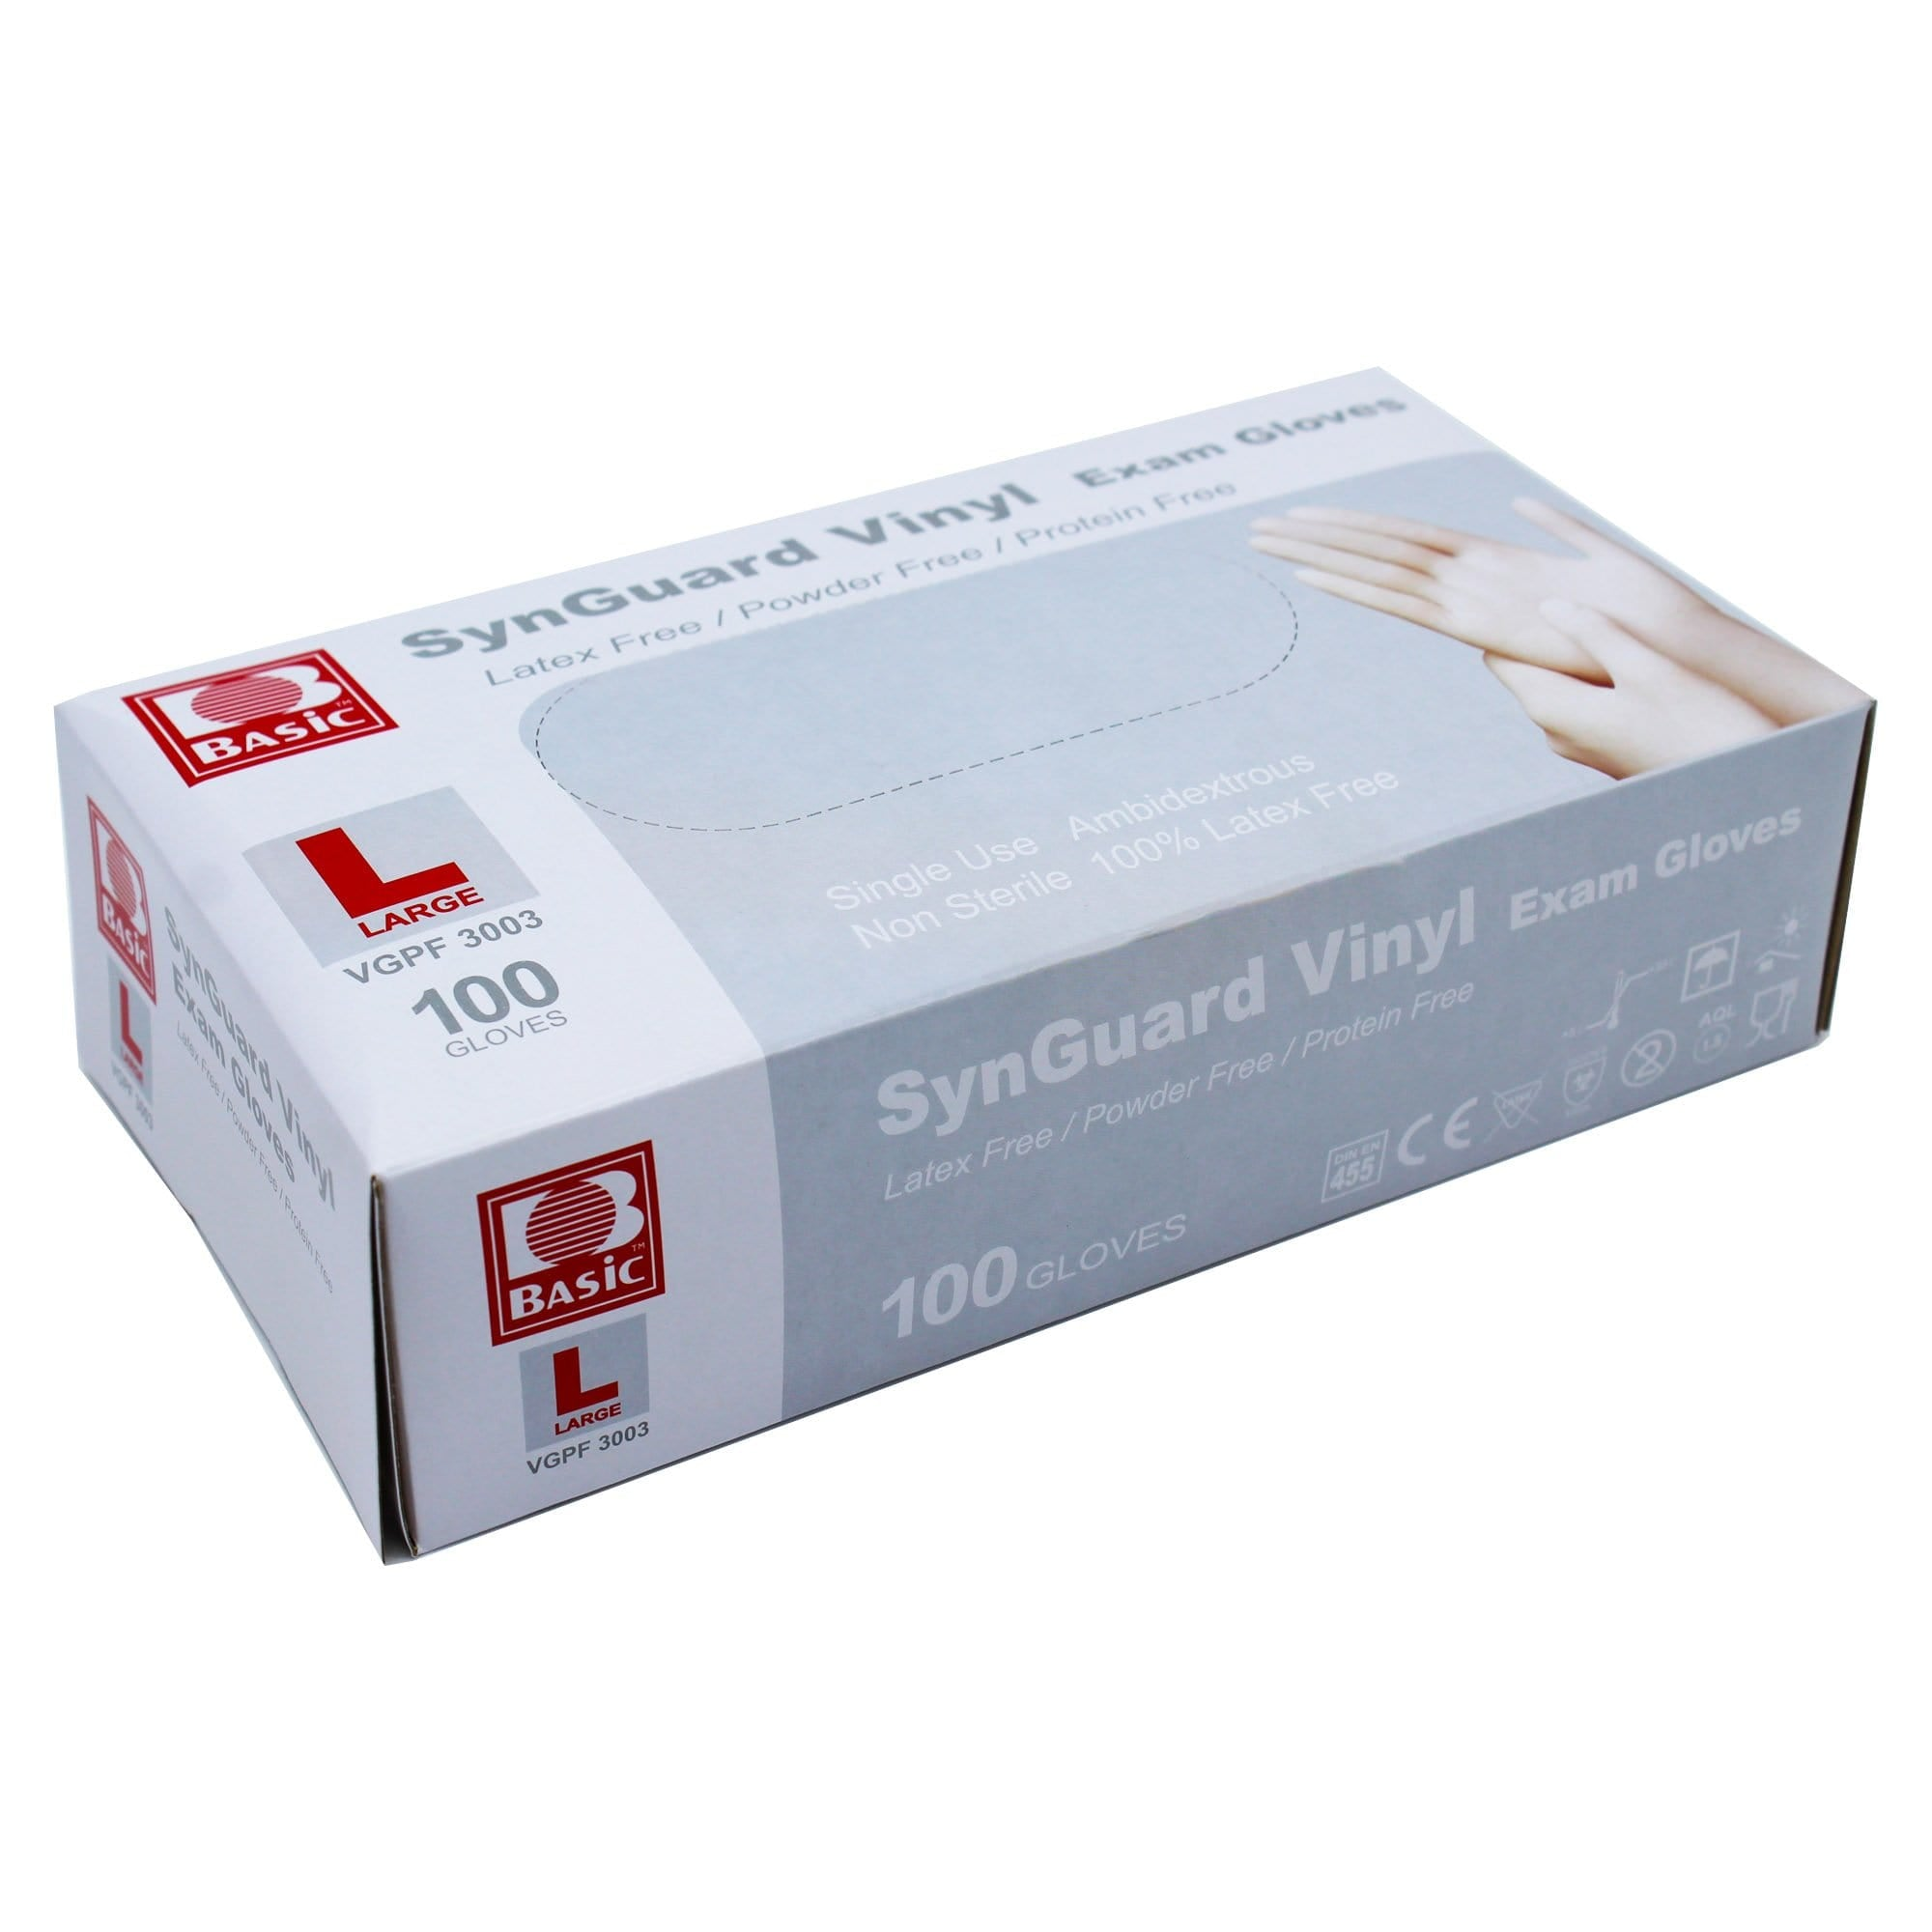 Vinyl Gloves, Box of 100 Pieces, Large - SynGuard